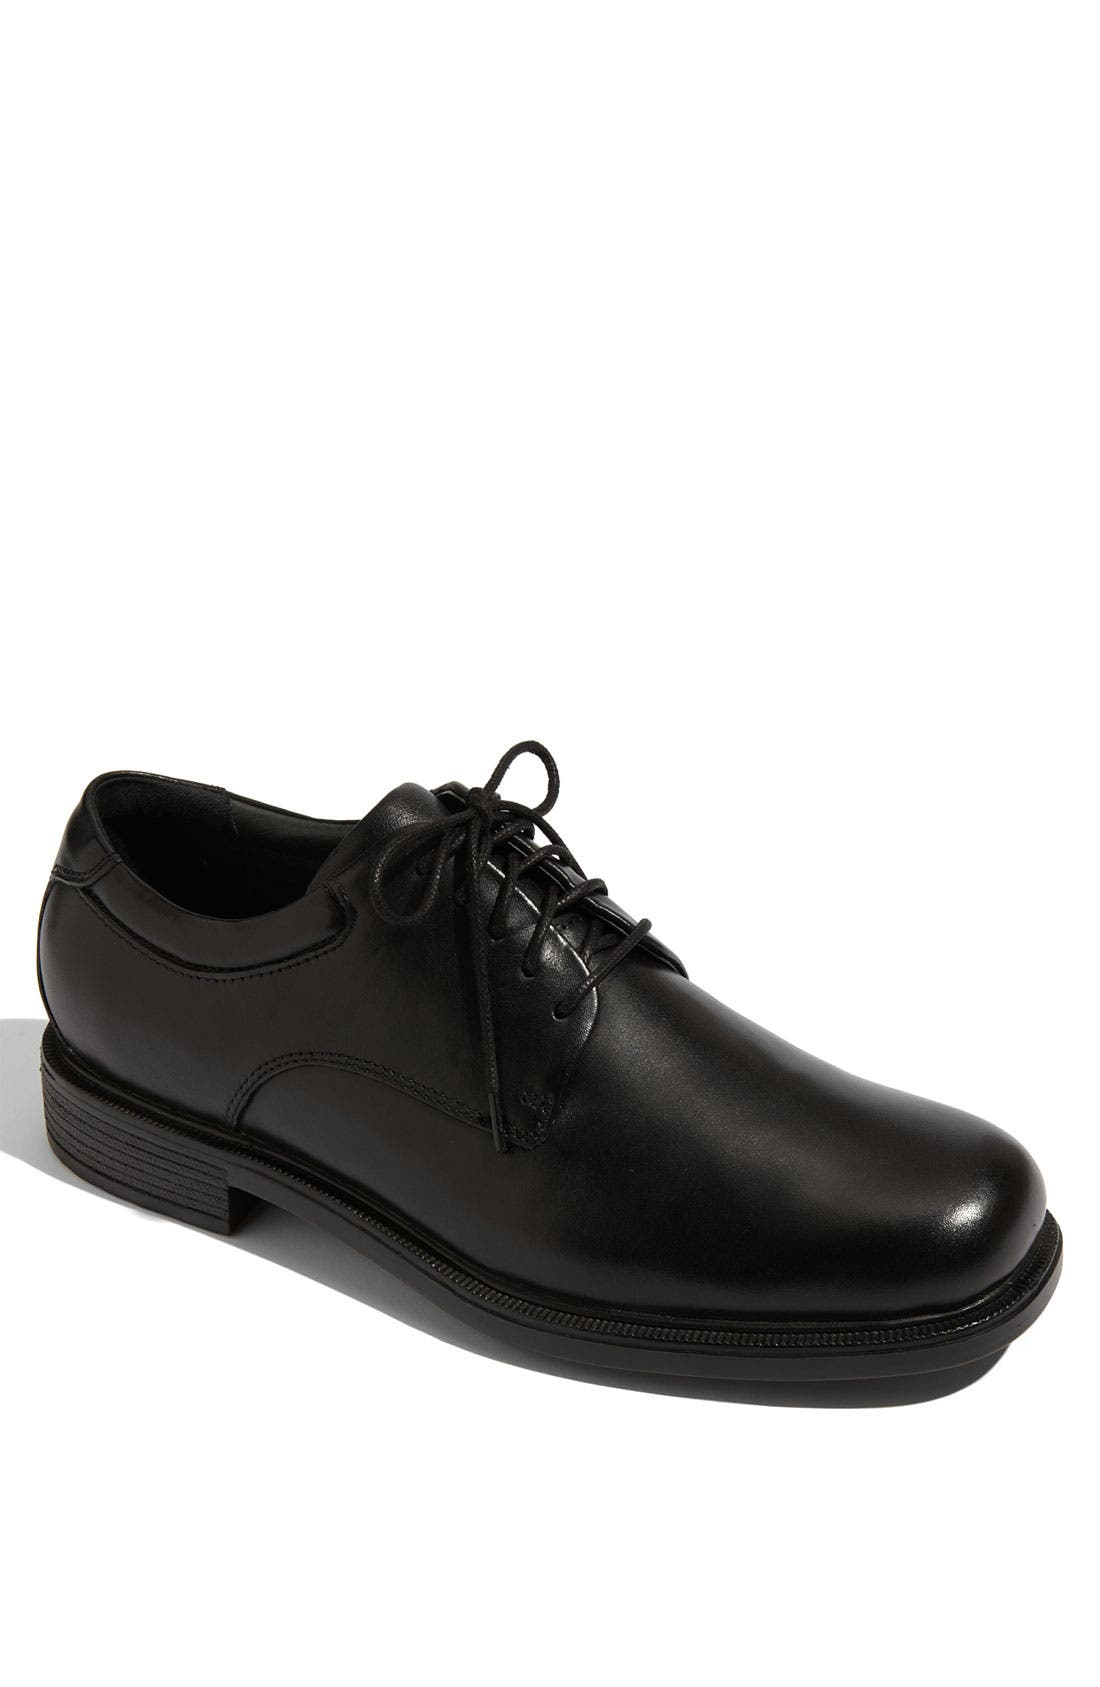 Alternate Image 1 Selected - Rockport 'Margin' Oxford (Men)